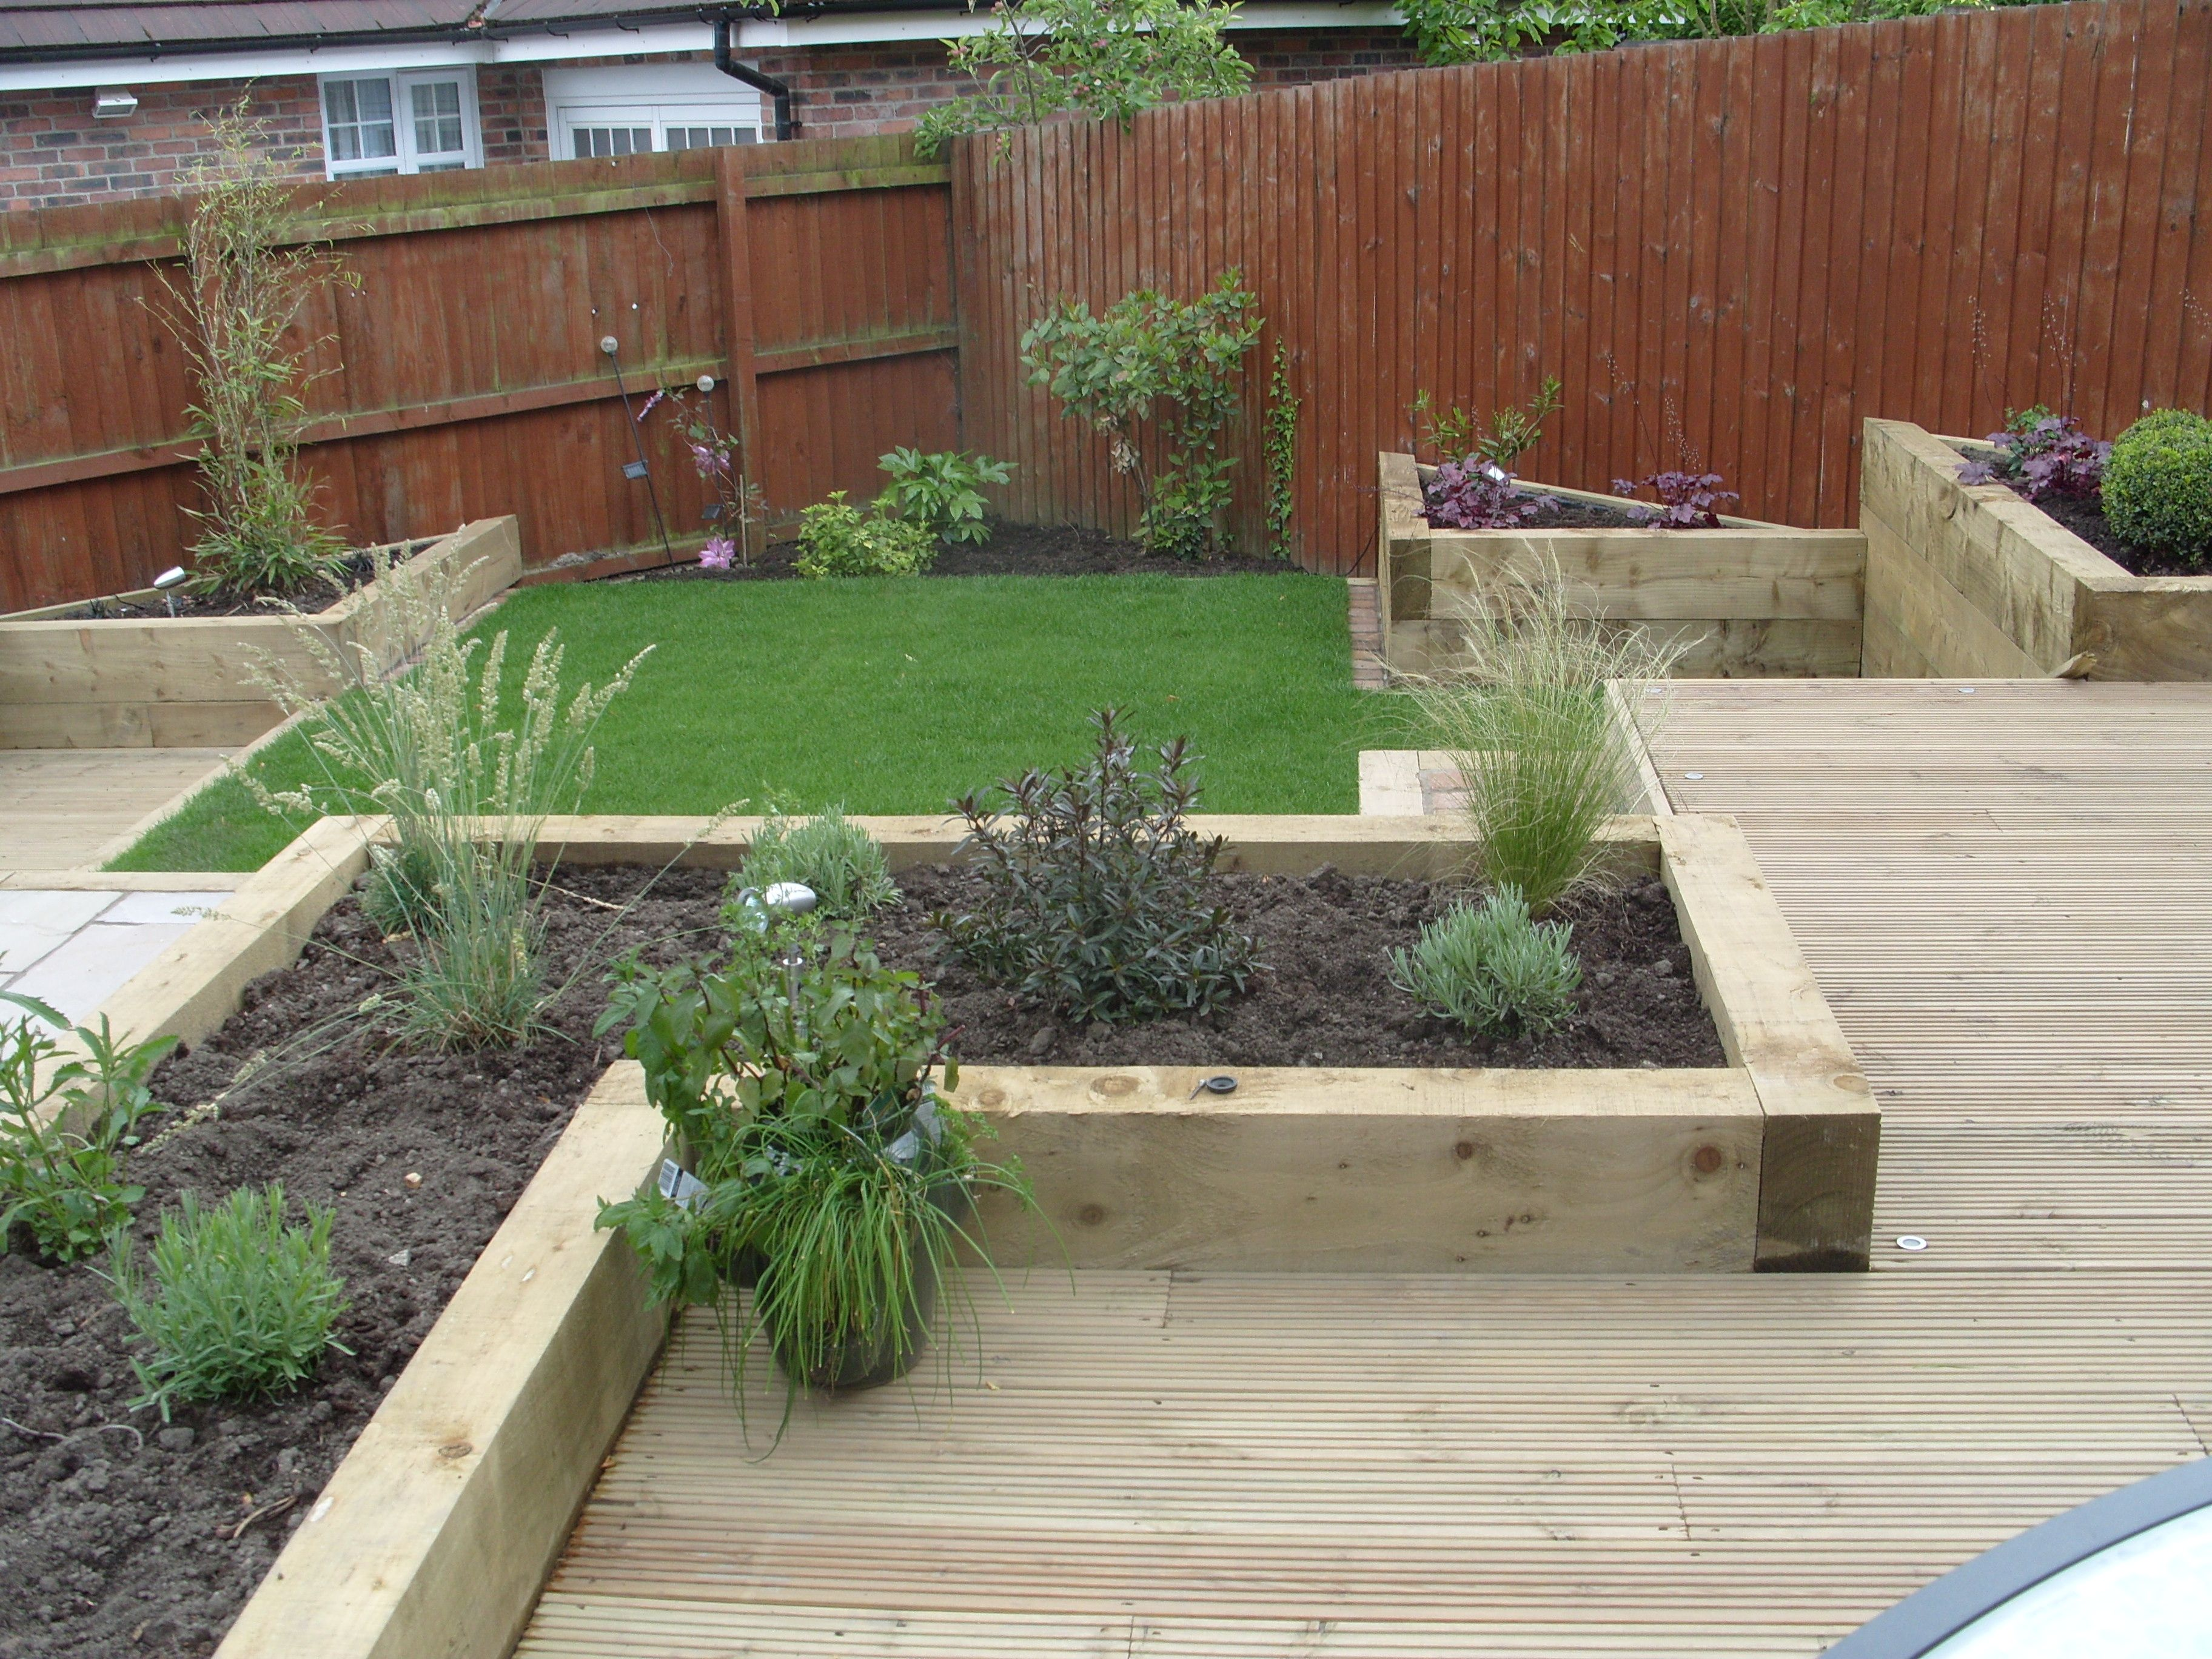 18 Garden Design For Small Backyard Page 14 Of 18 Gardens